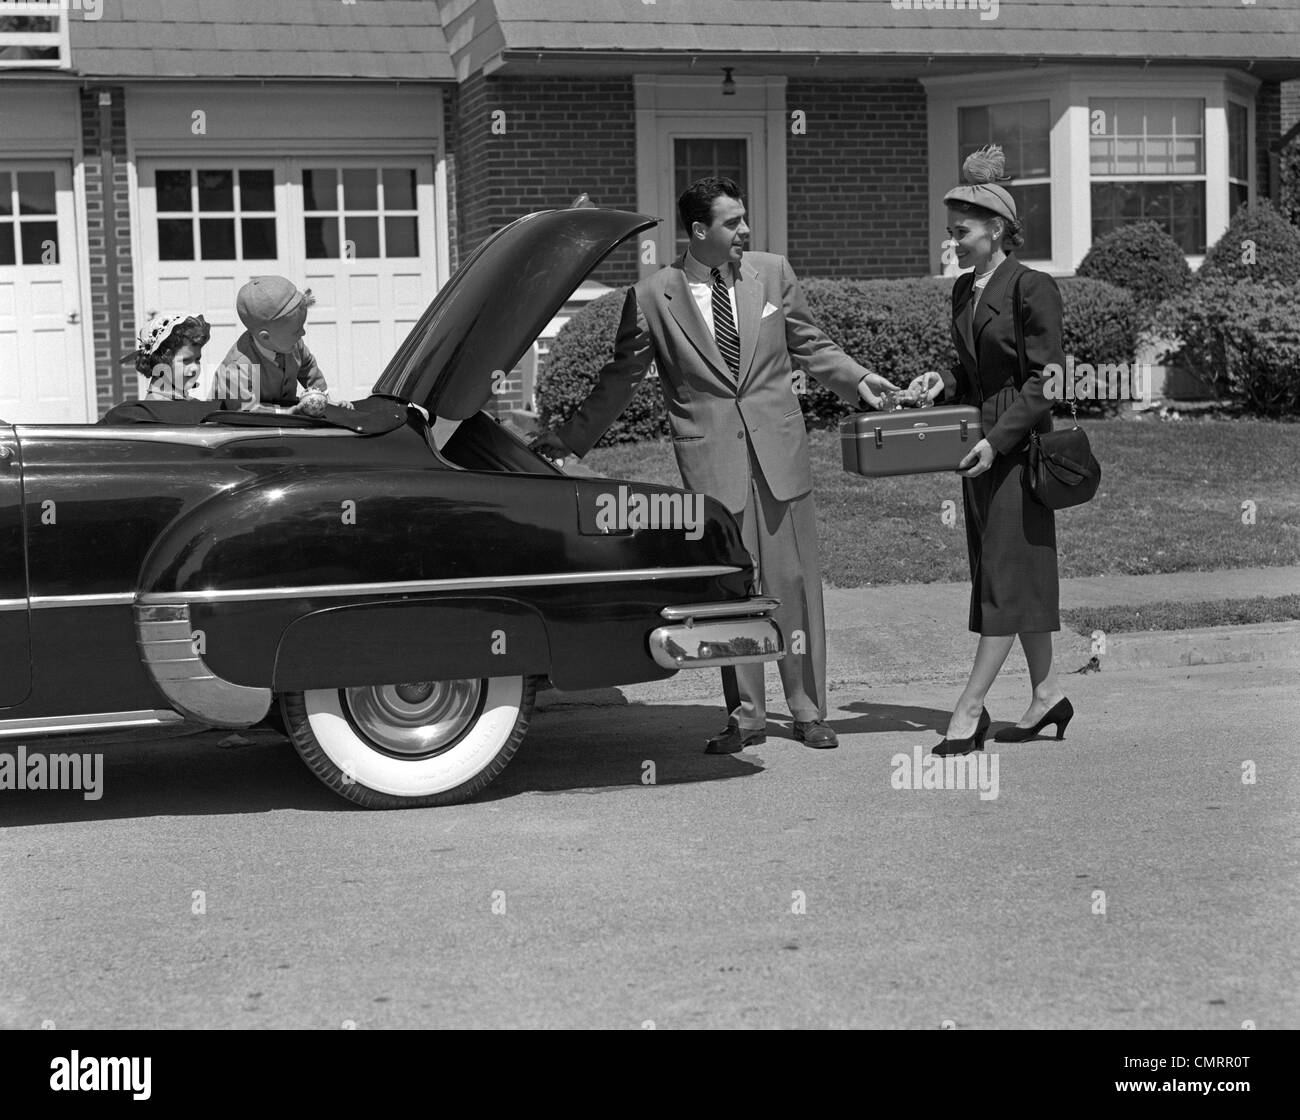 1950s HUSBAND AND WIFE PACKING TRUNK OF CONVERTIBLE WITH LUGGAGE WHILE SON & DAUGHTER WATCH FROM BACK SEAT - Stock Image